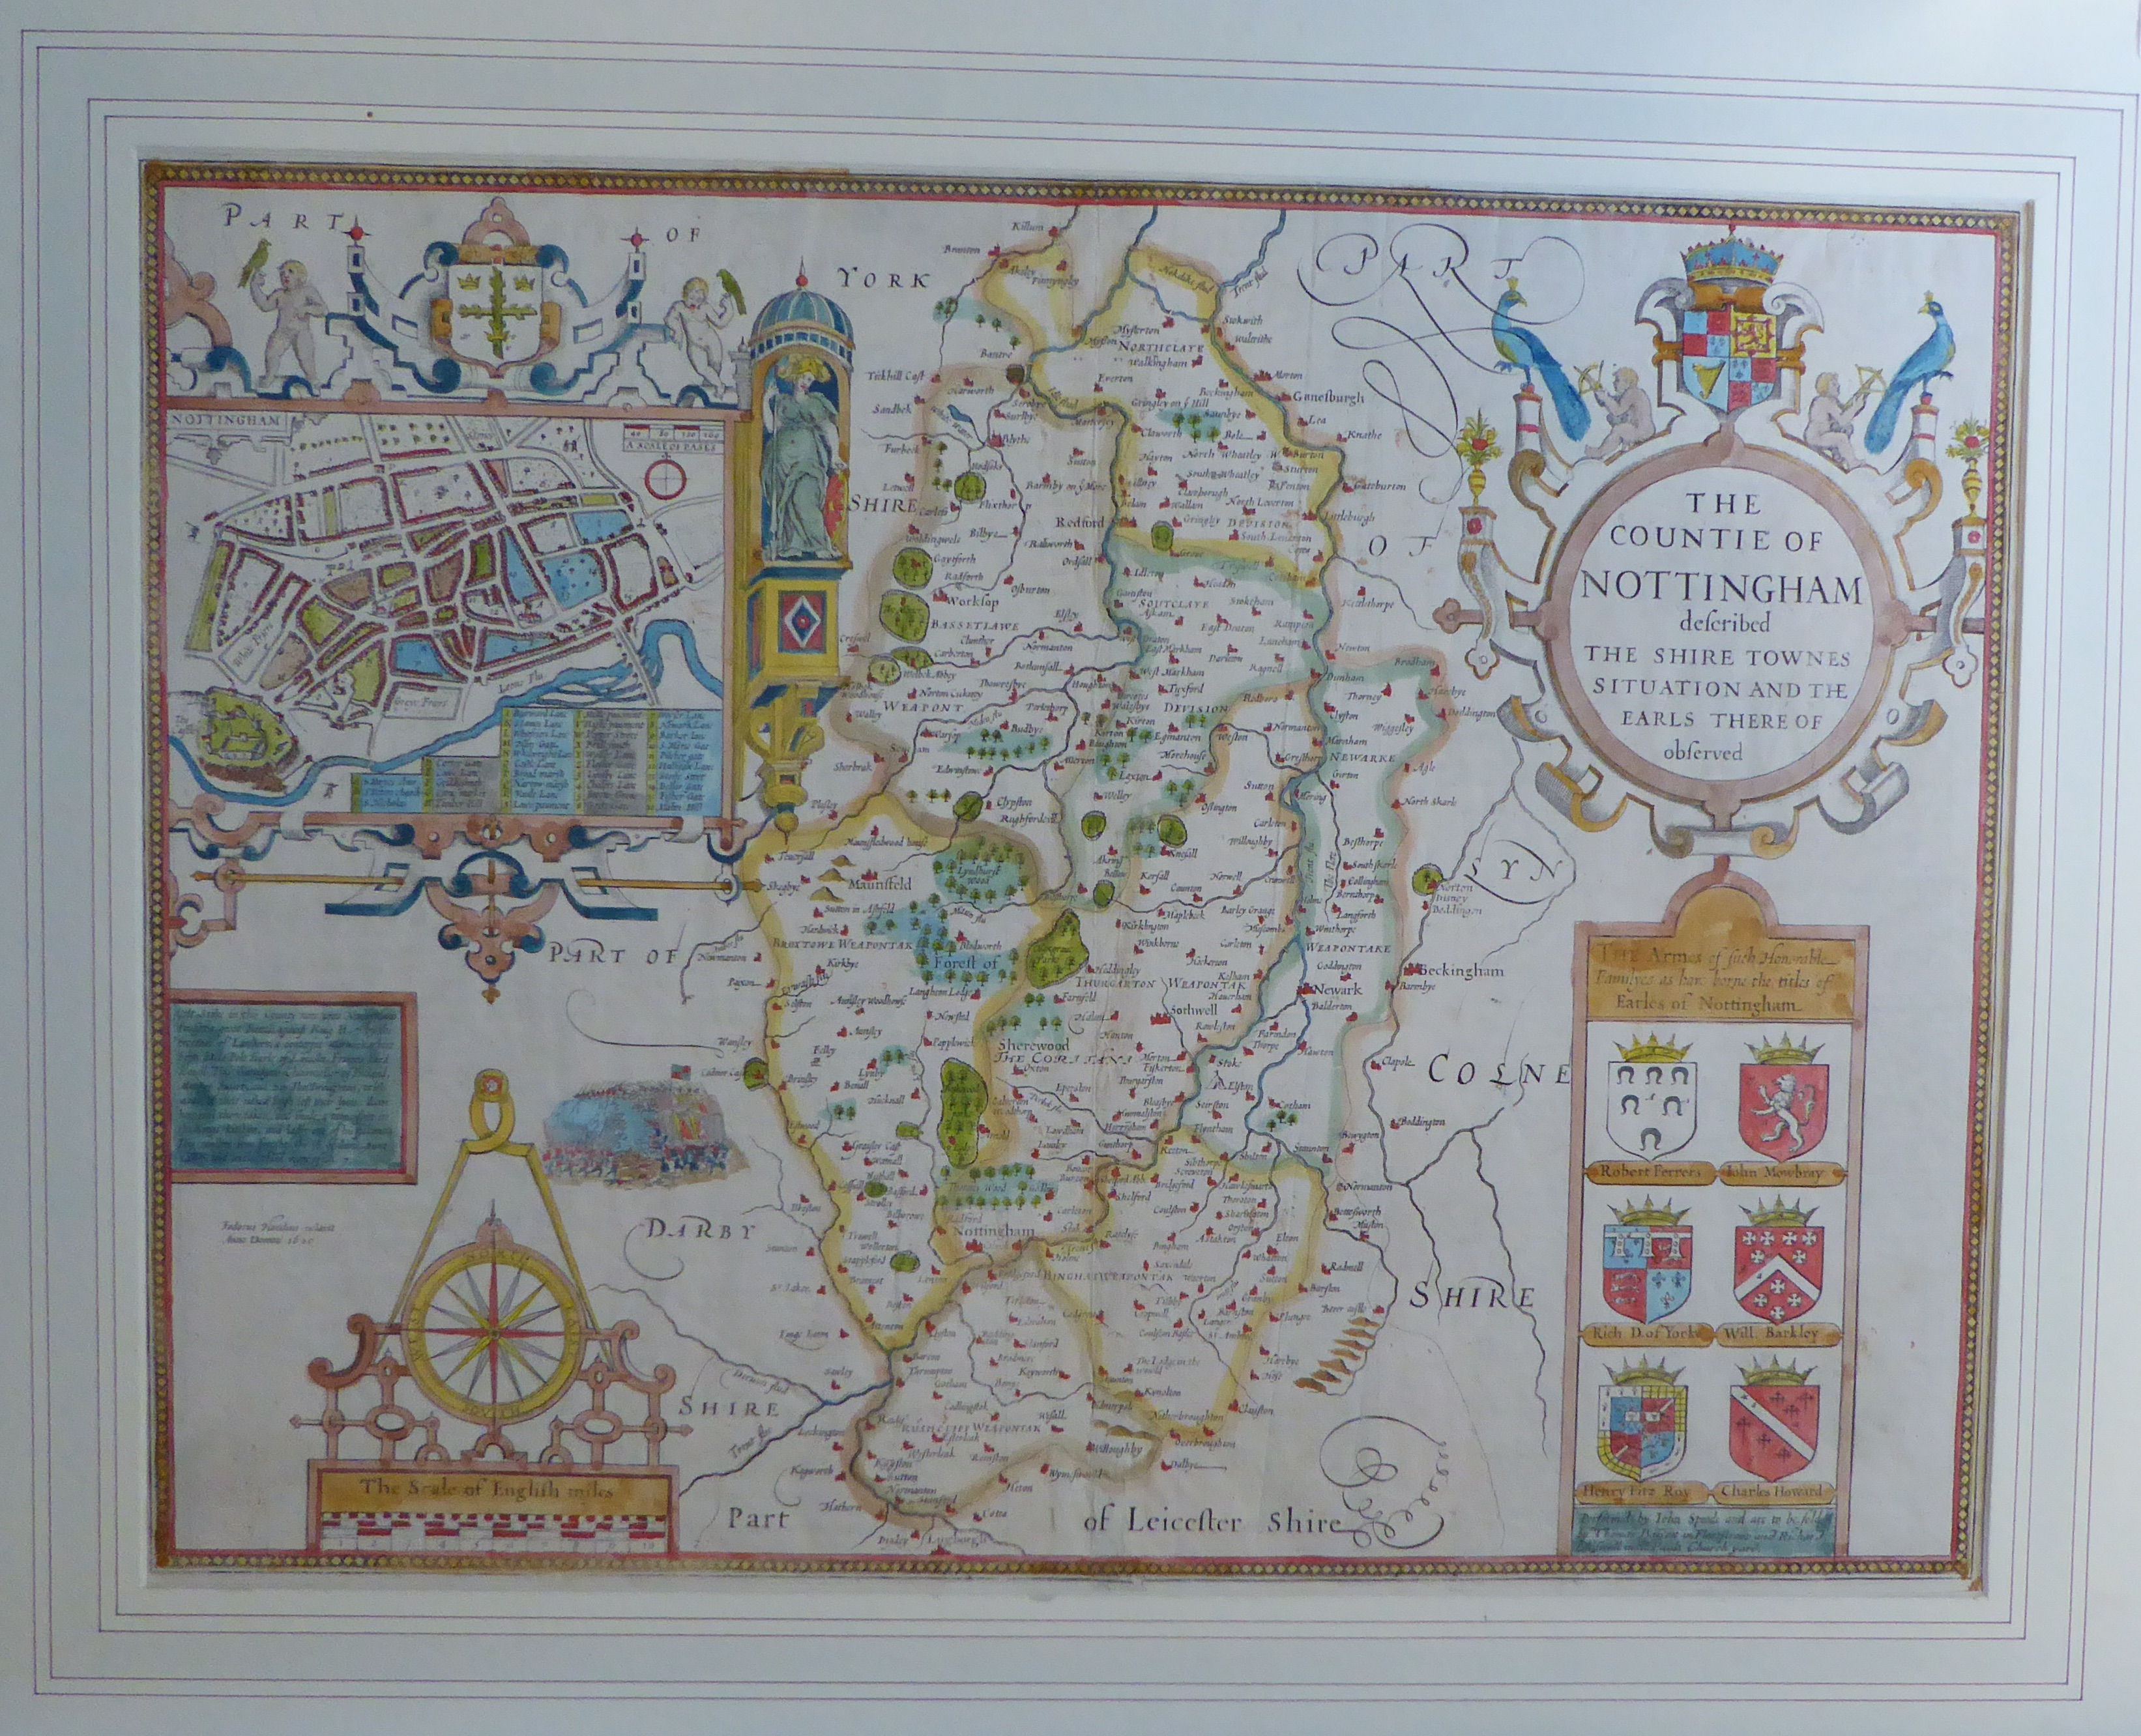 Lot 36 - A C17th hand coloured copper engraved map of The County of Nottingham by John Speed, c1676